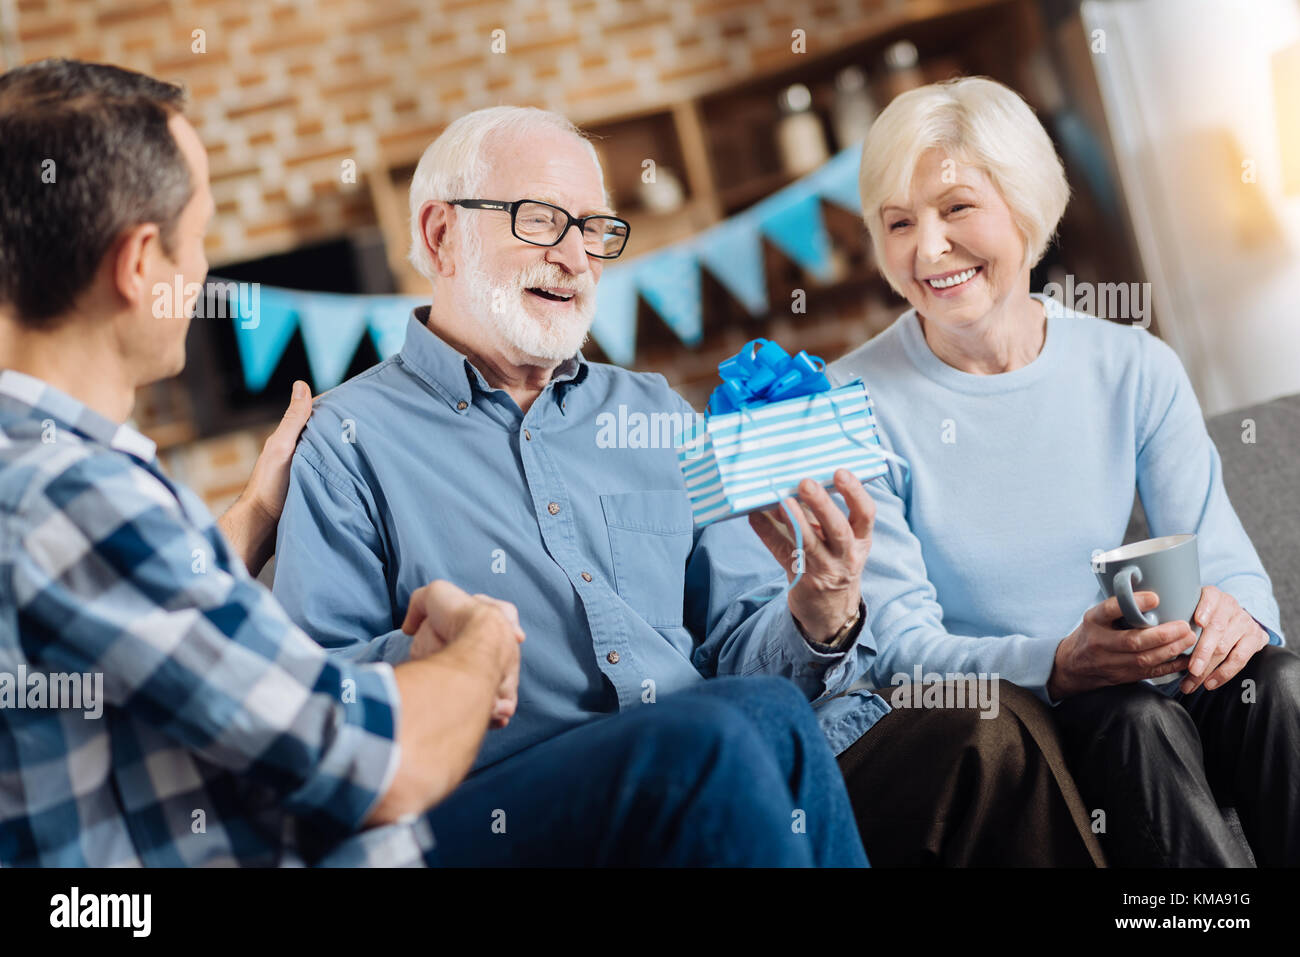 Elderly Man Looking At Birthday Present From His Family